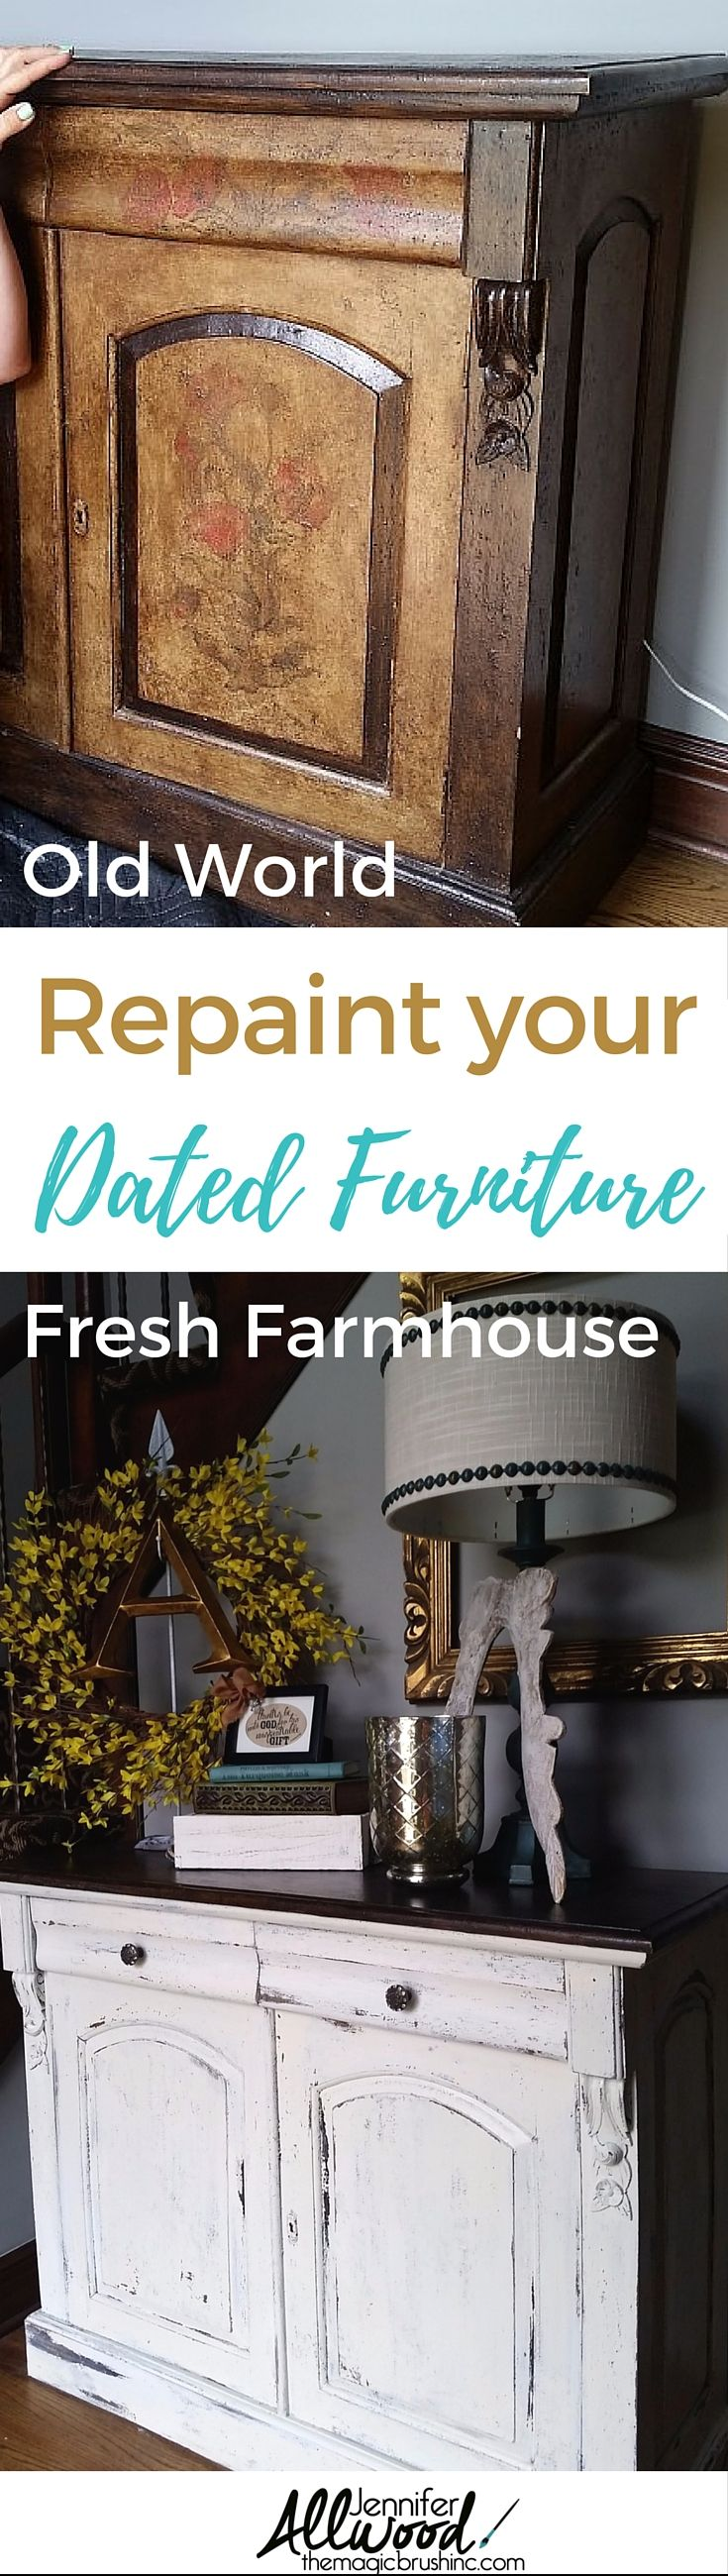 How to paint dated Old World furniture into fresh white farmhouse furniture. This white furniture tutorial and makeover will inspire you to update your living space into a farmhouse feel! More Painting Tips, Design Advice and furniture makeovers at theMagicBrushinc.com